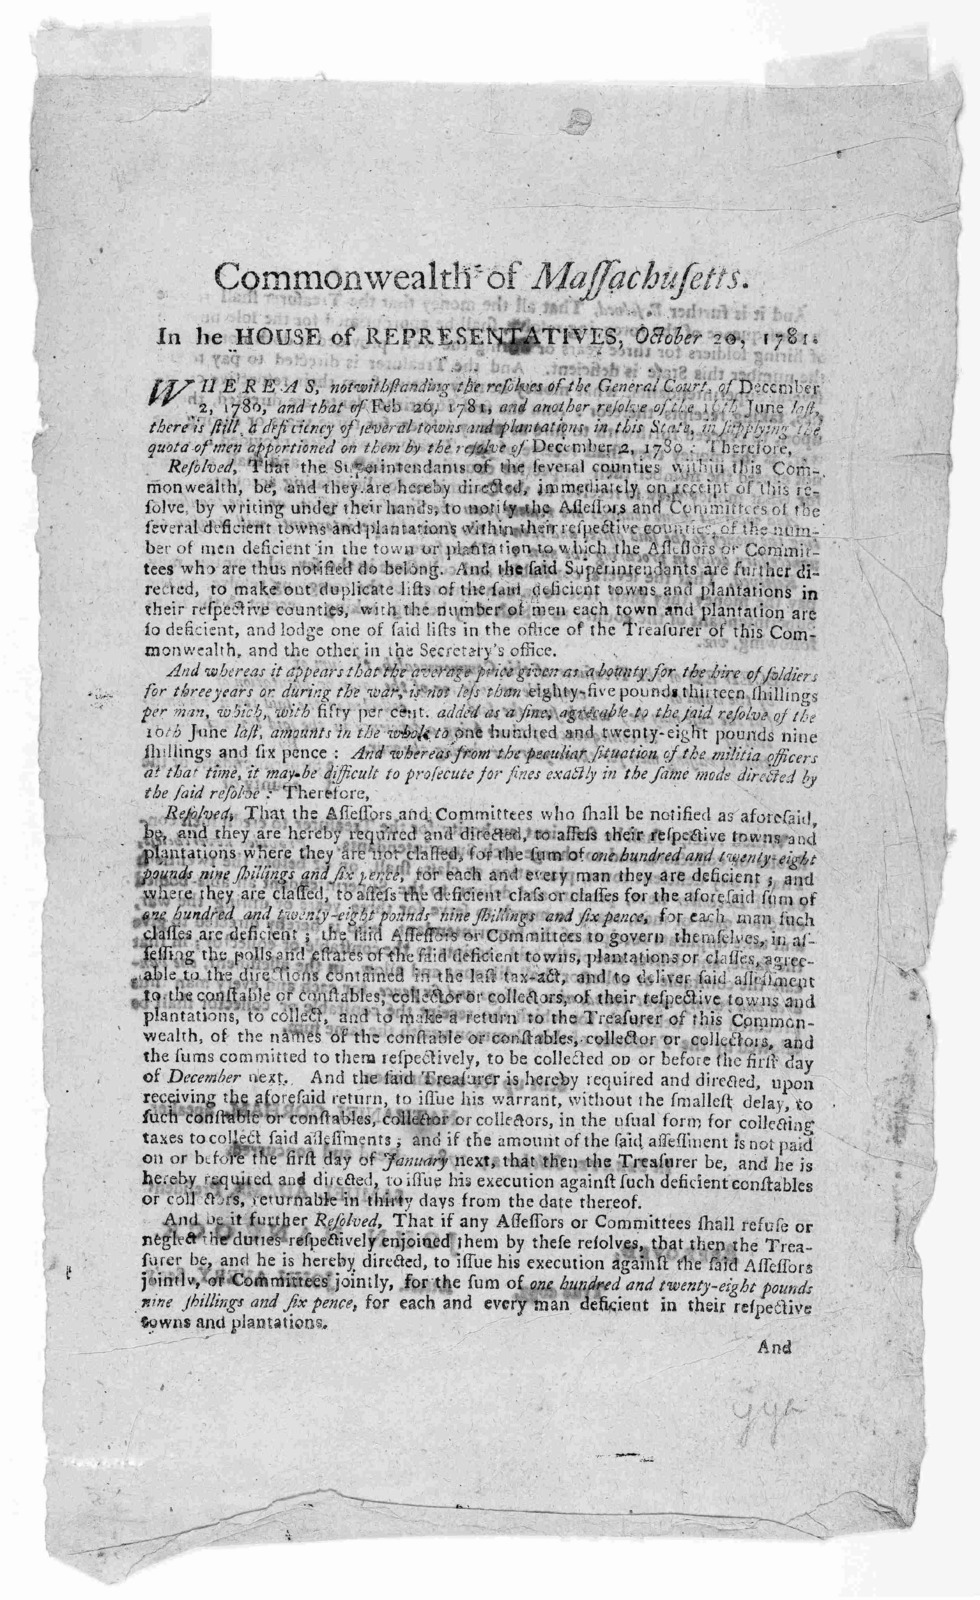 Commonwealth of Massachusetts. In the House of representatives, October 20, 1781. Whereas notwithstanding the resolves of the General Court, of December 2, 1780, and that of Feb. 26, 1781, and another resolve of the 16th June last ...[Boston: Pr